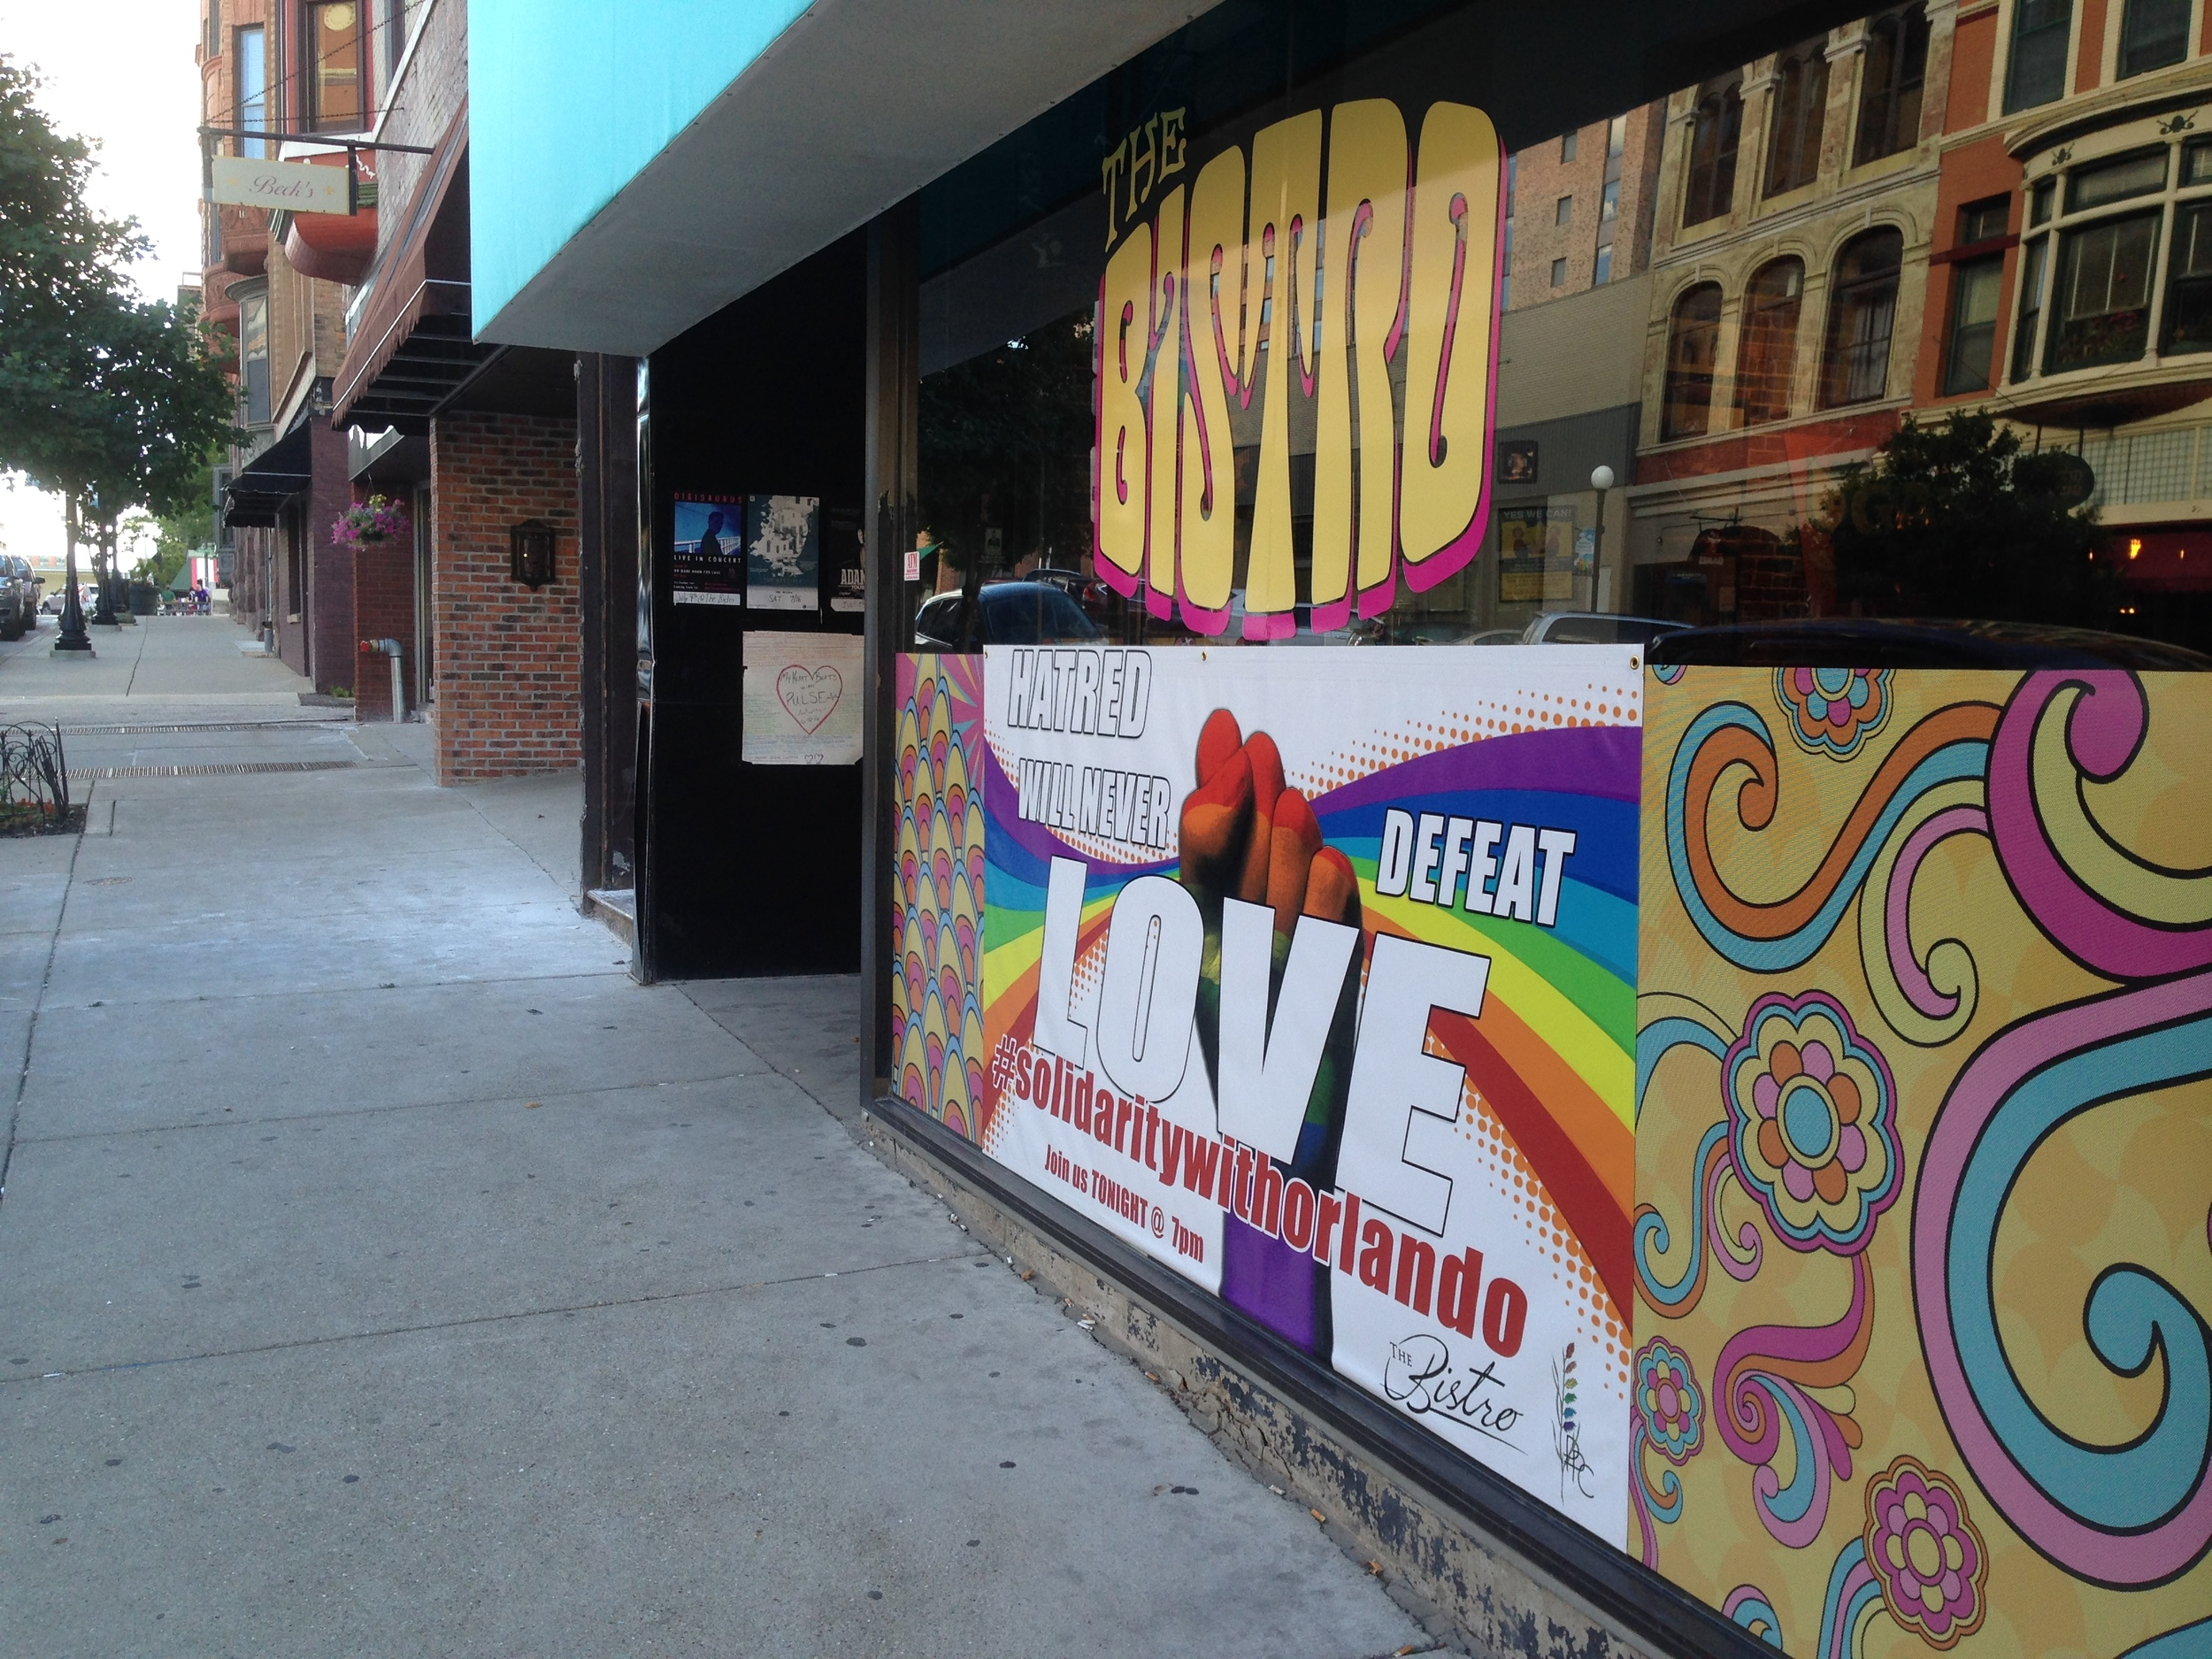 A block off the Old Courthouse square, The Bistro -- a social center of activity for the Twin Cities' LGBT community -- offers a message of strength in the wake of the Orlando tragedy.